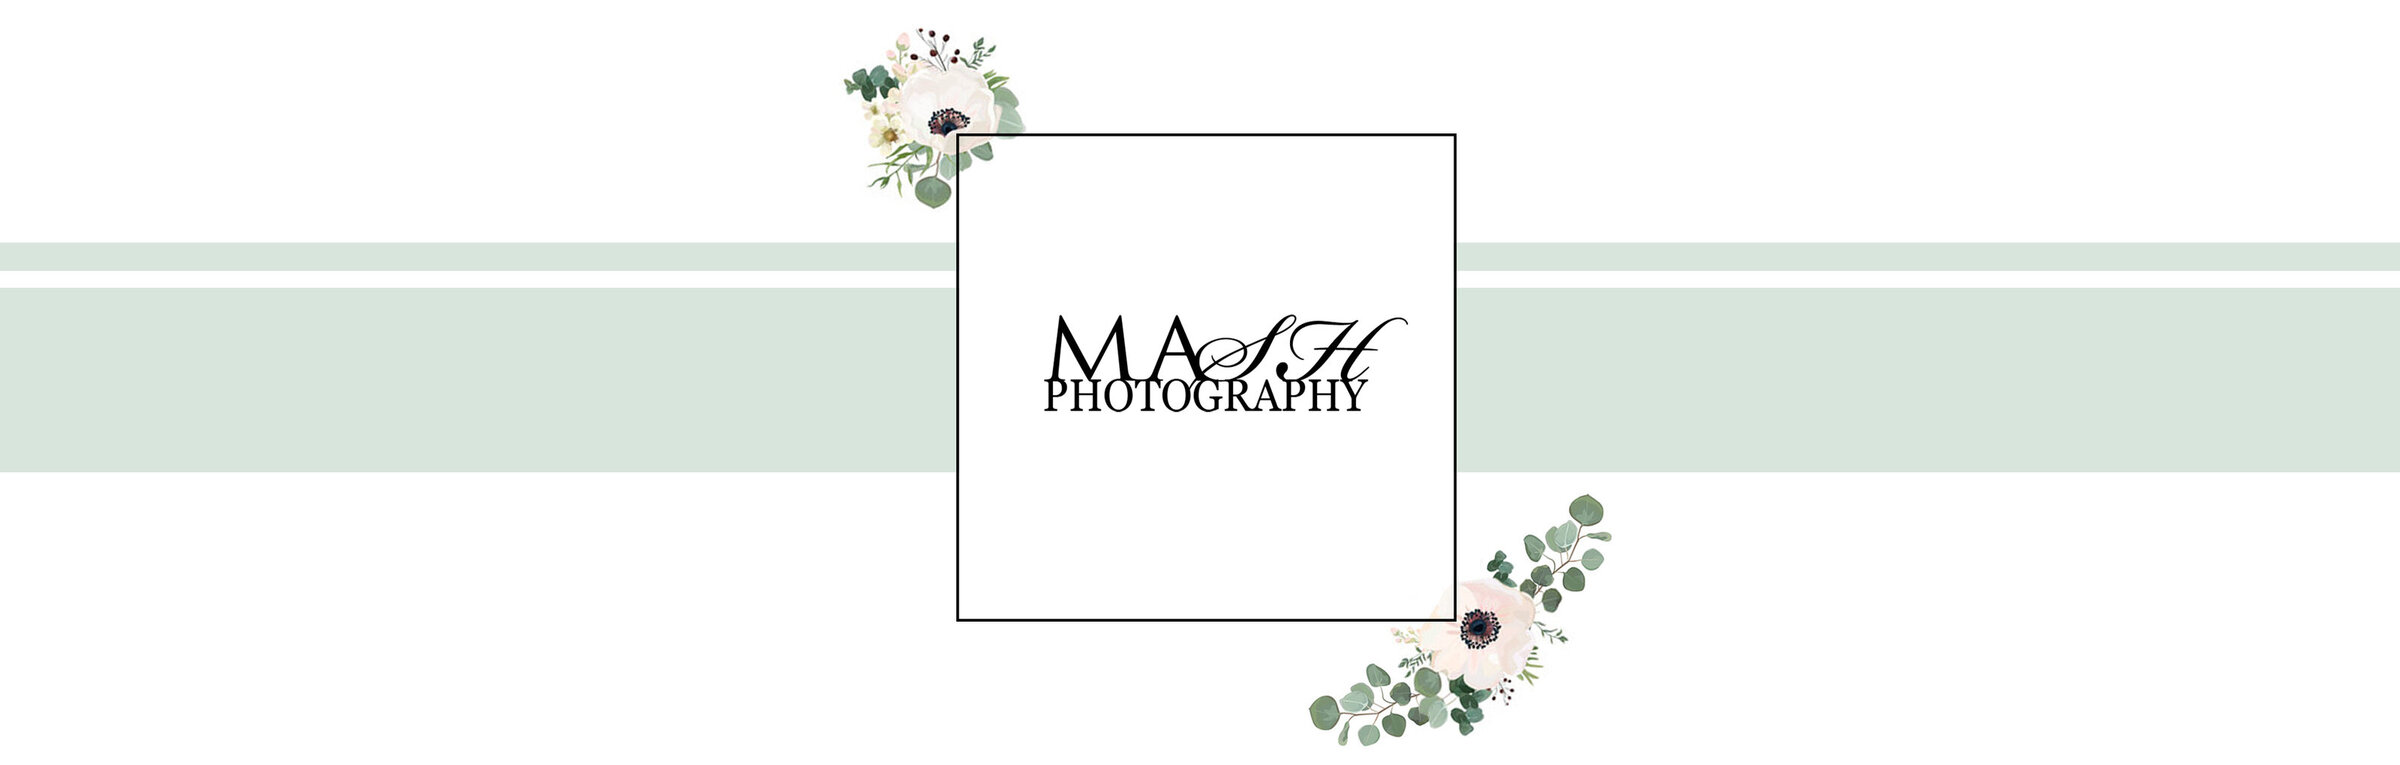 Matthew and Shannon are aHusband and Wife Photography team based out of Stouffville, ON